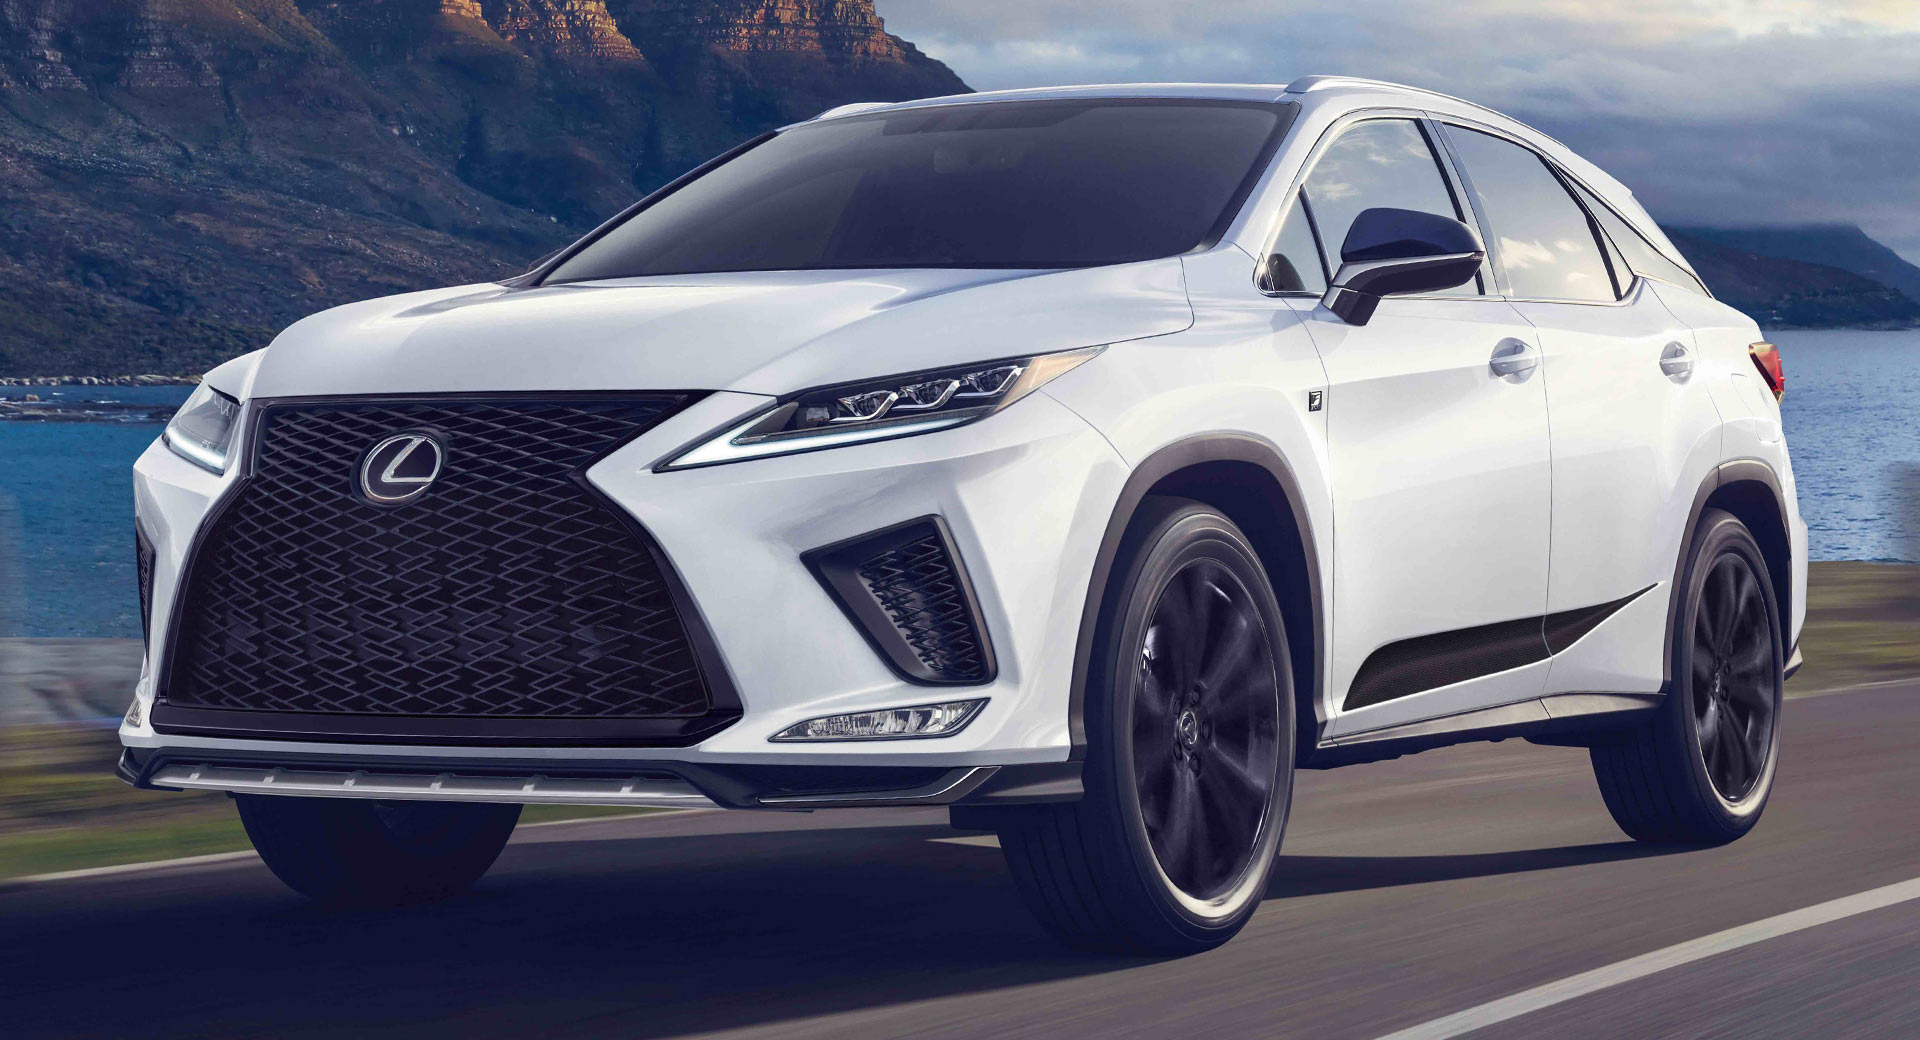 The 2021 Lexus Rx Joins The Black Line Crowd With Unique Styling Cues Carscoops